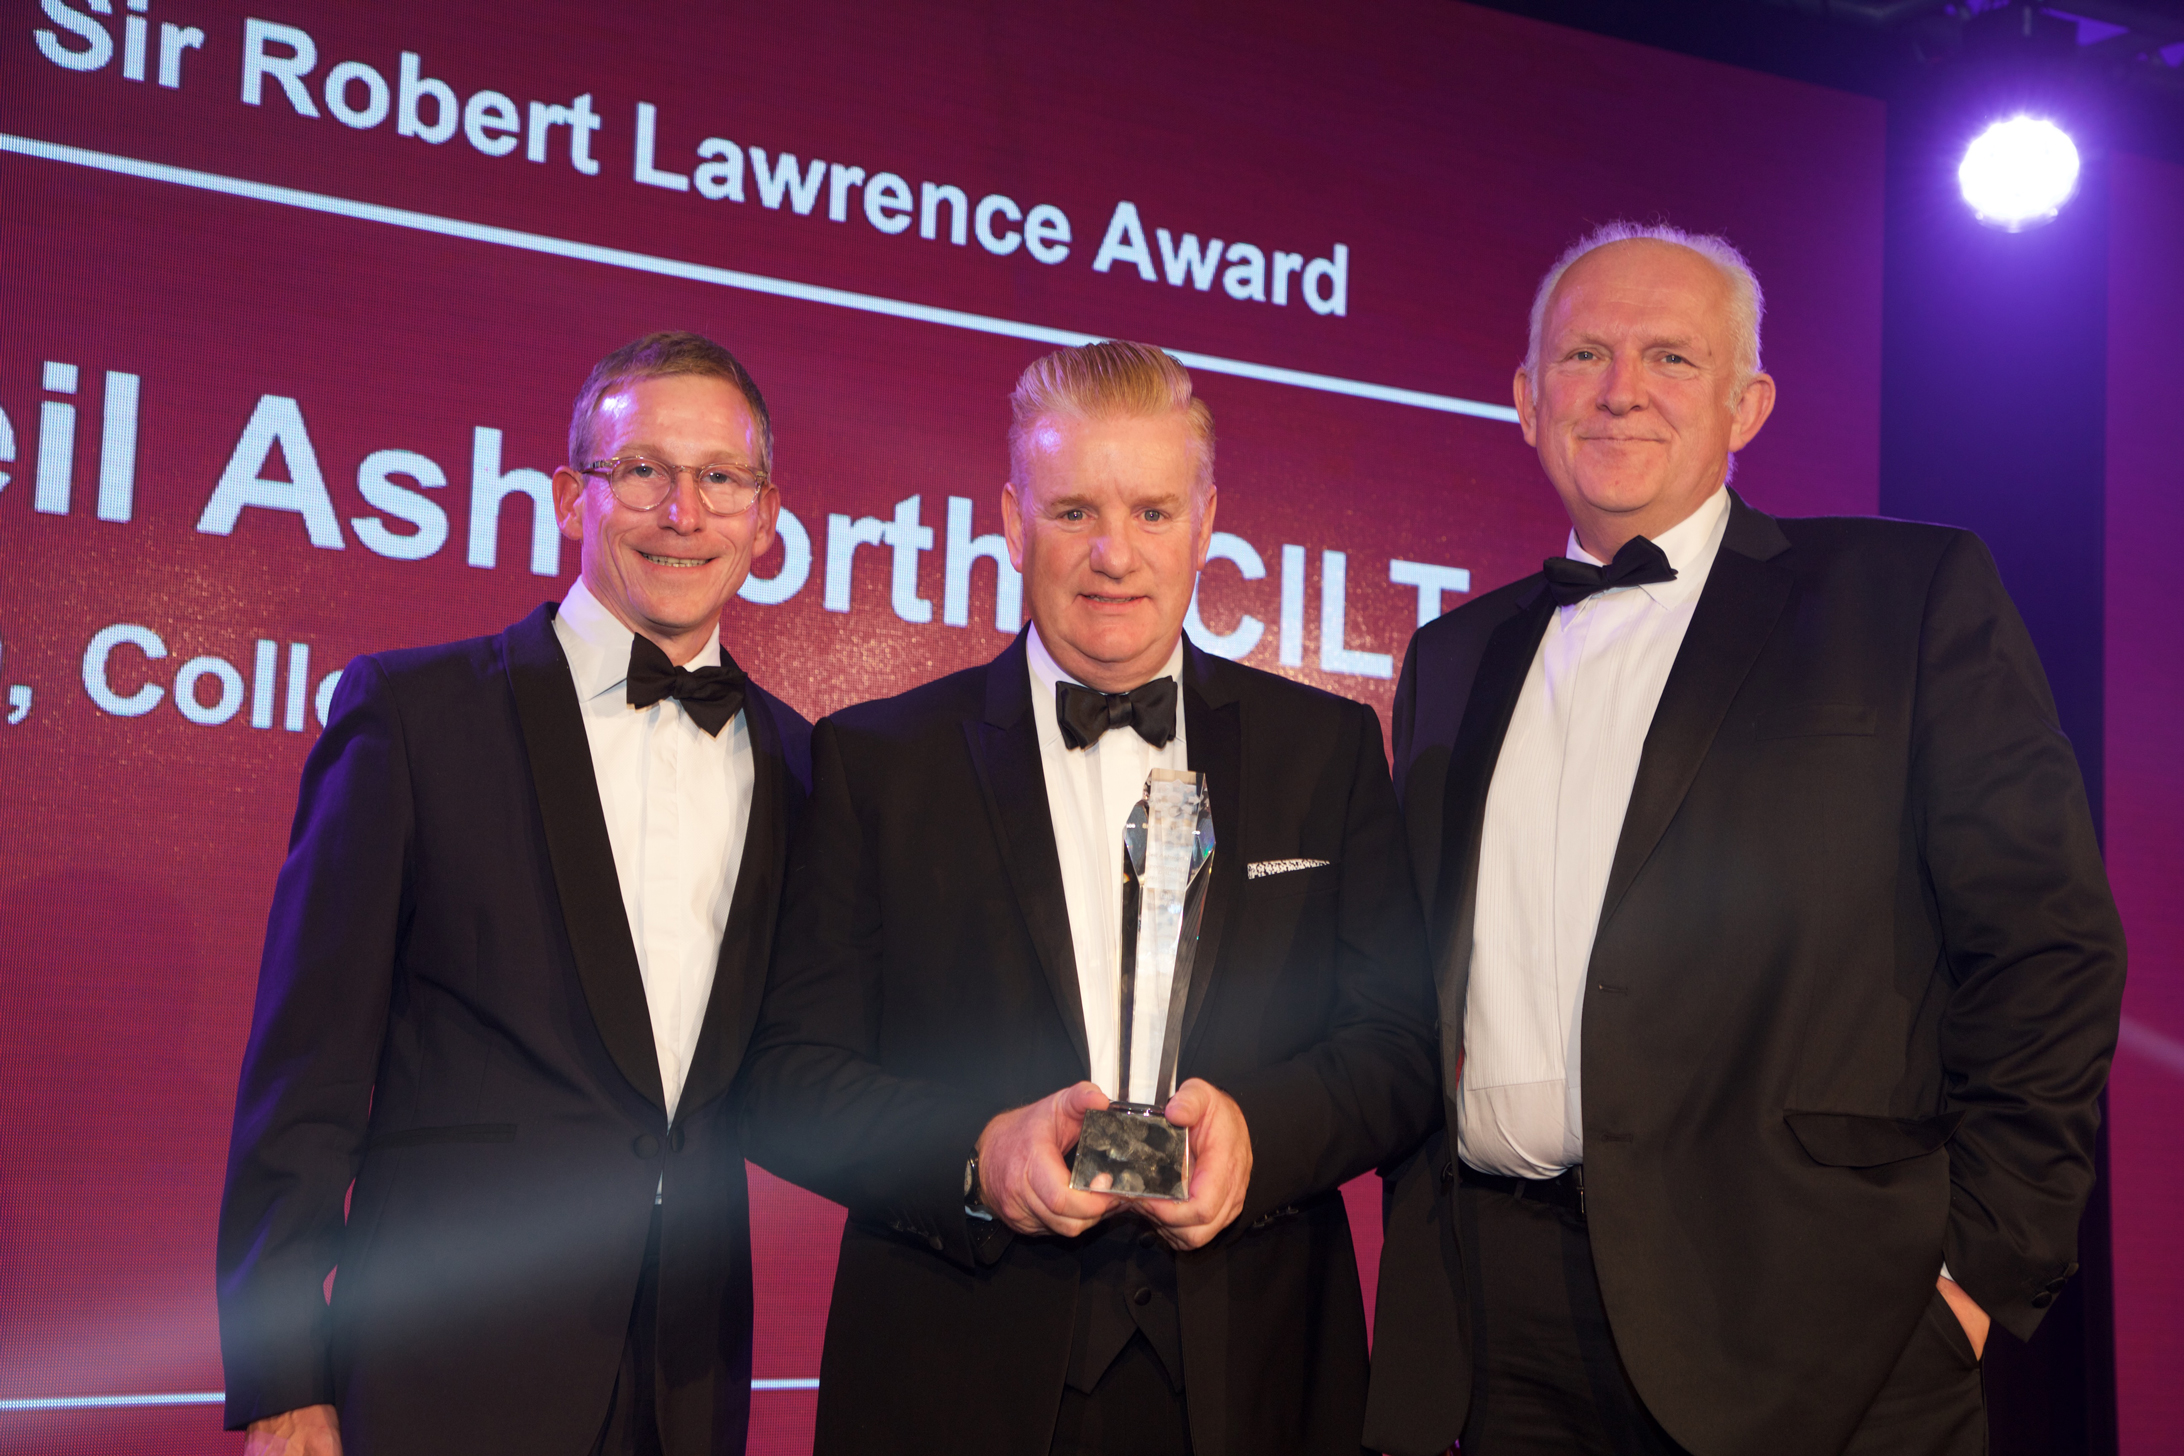 Neil Ashworth CILT Award